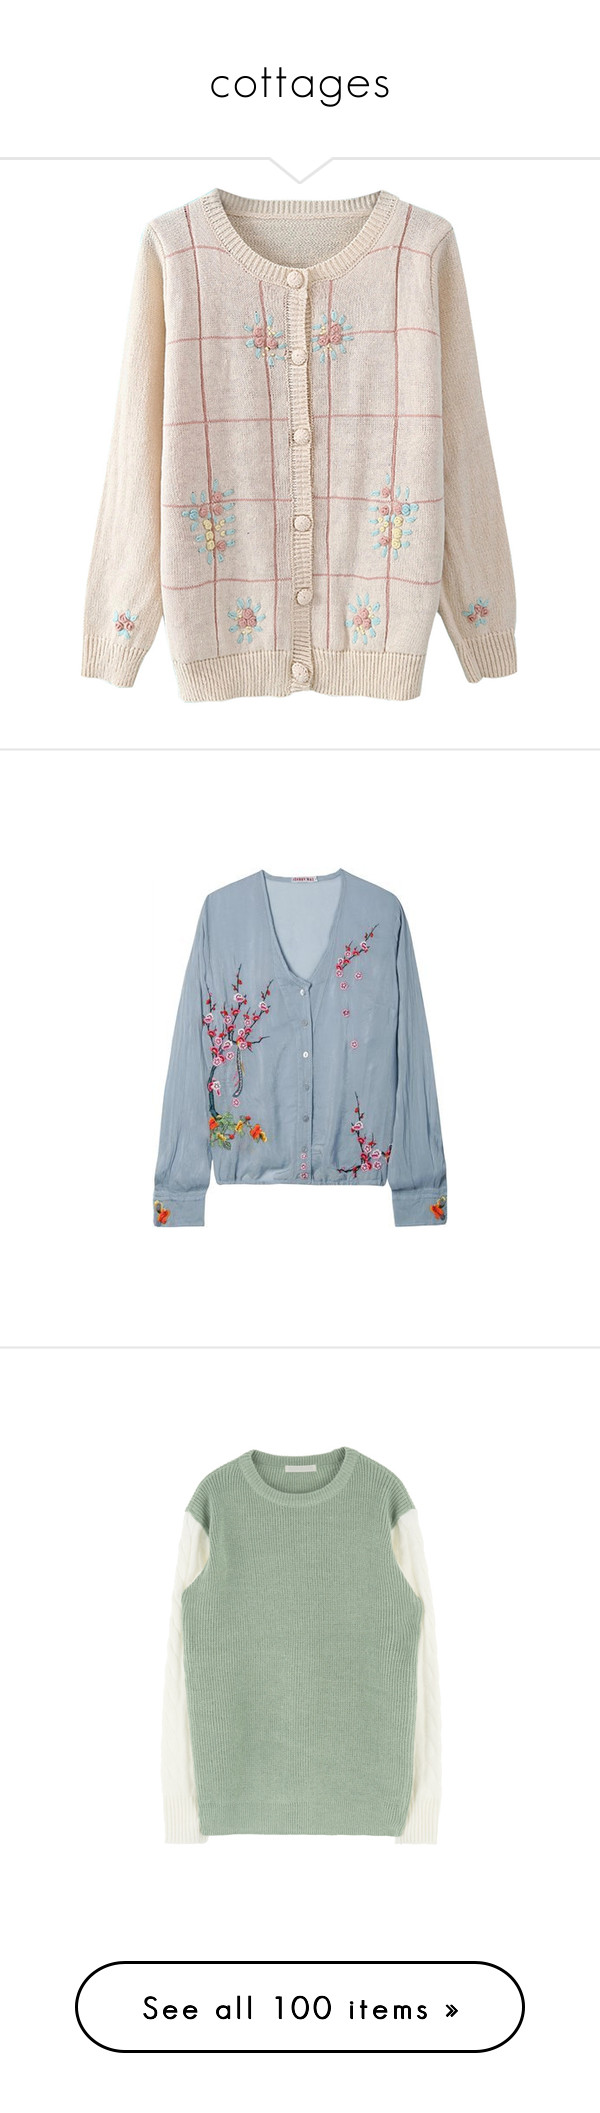 """""""cottages"""" by sleepyseas ❤ liked on Polyvore featuring tops, cardigans, outerwear, clothing - cardigans, jackets, beige, button down cardigan, button up tops, beige cardigan and pink top"""